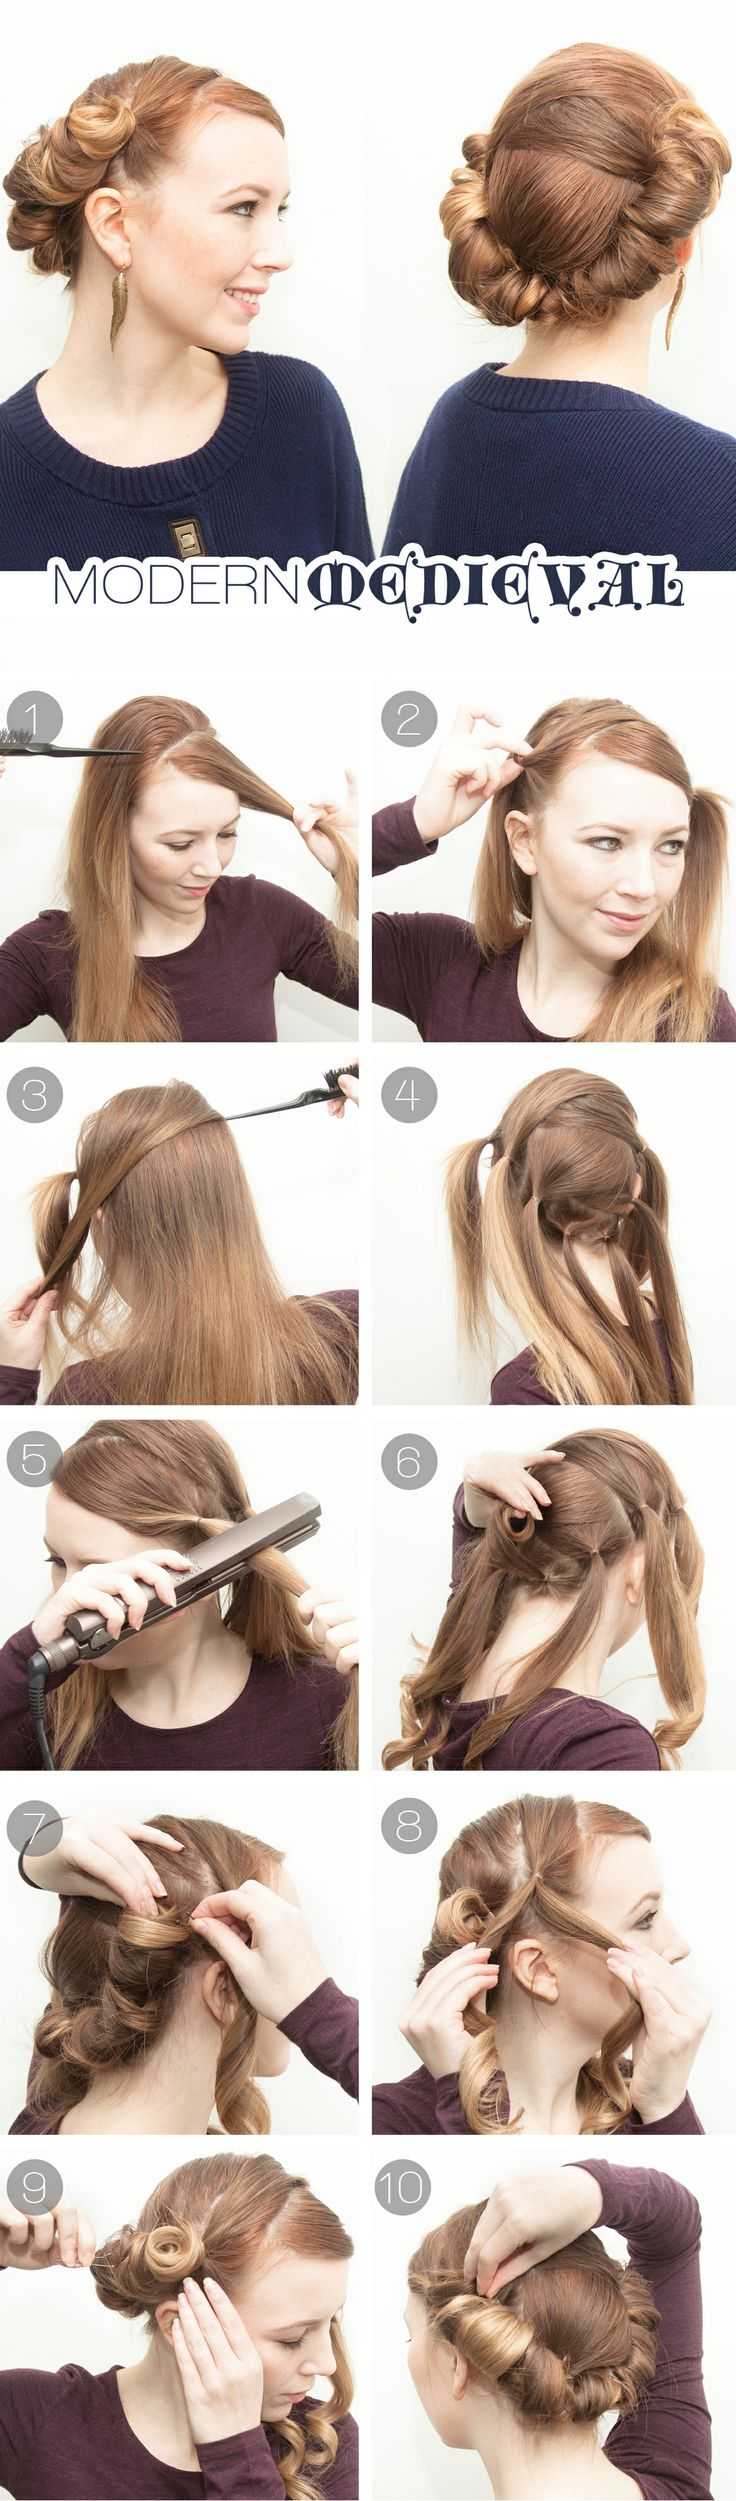 9 Genius Hairstyles You Can Do With A Flat Iron Sheknows